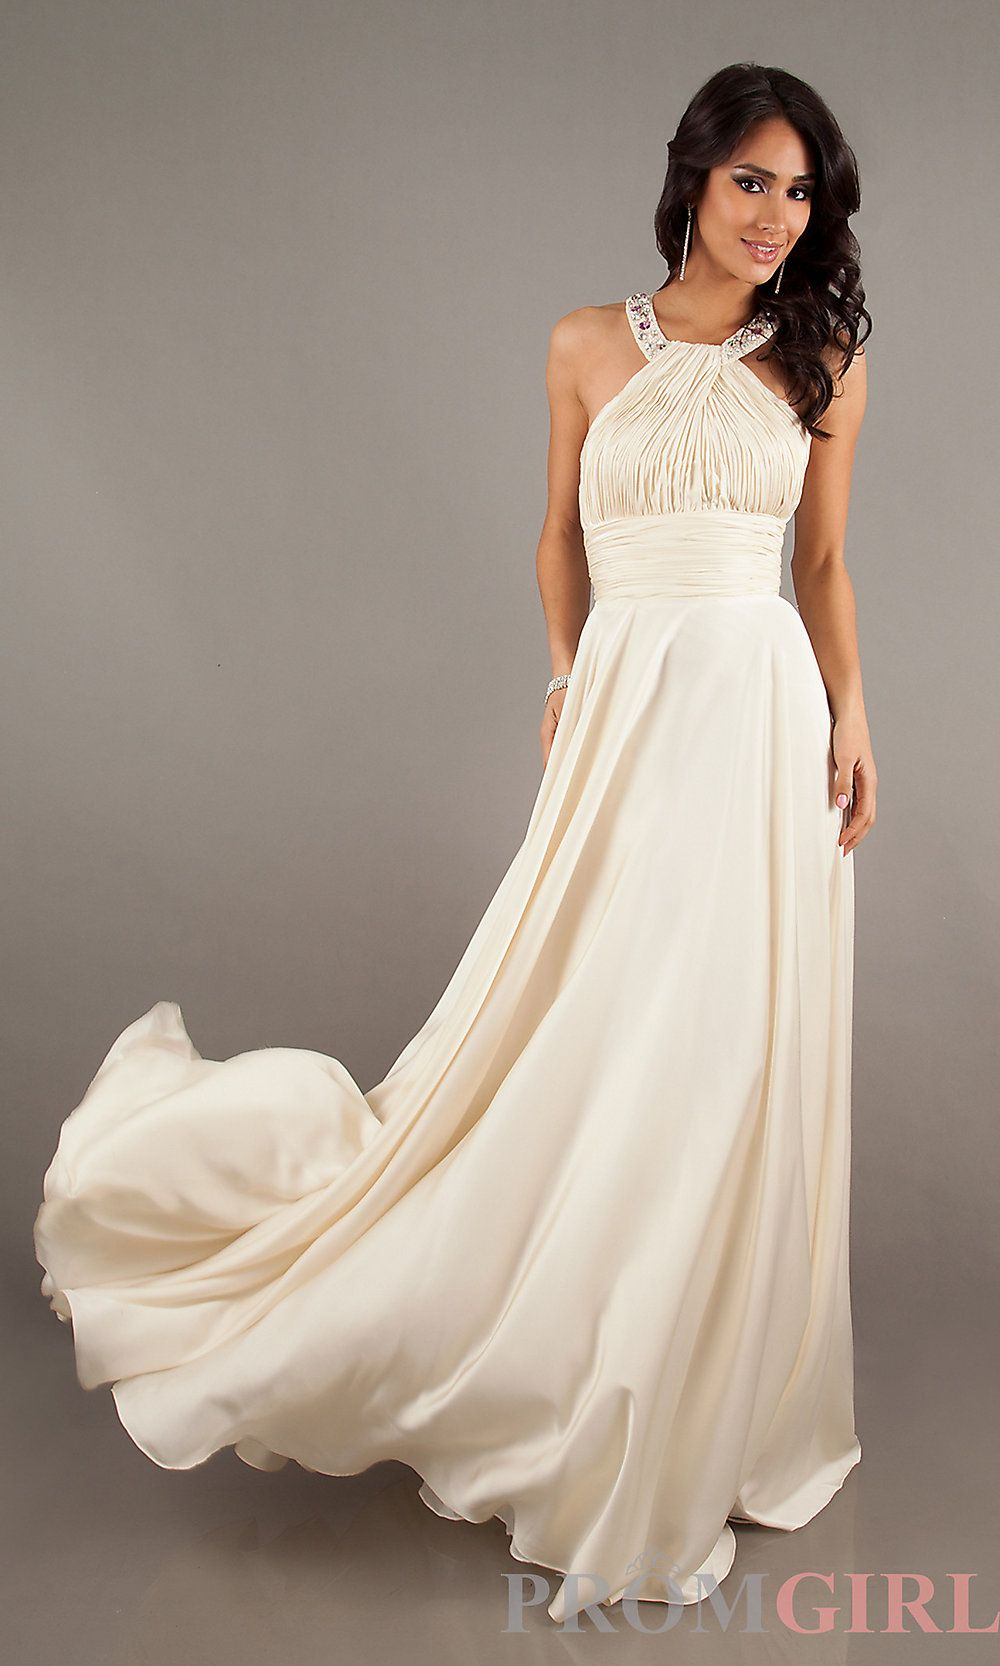 High-Neck Long Halter Prom Gown | Cream, Gowns and Shops